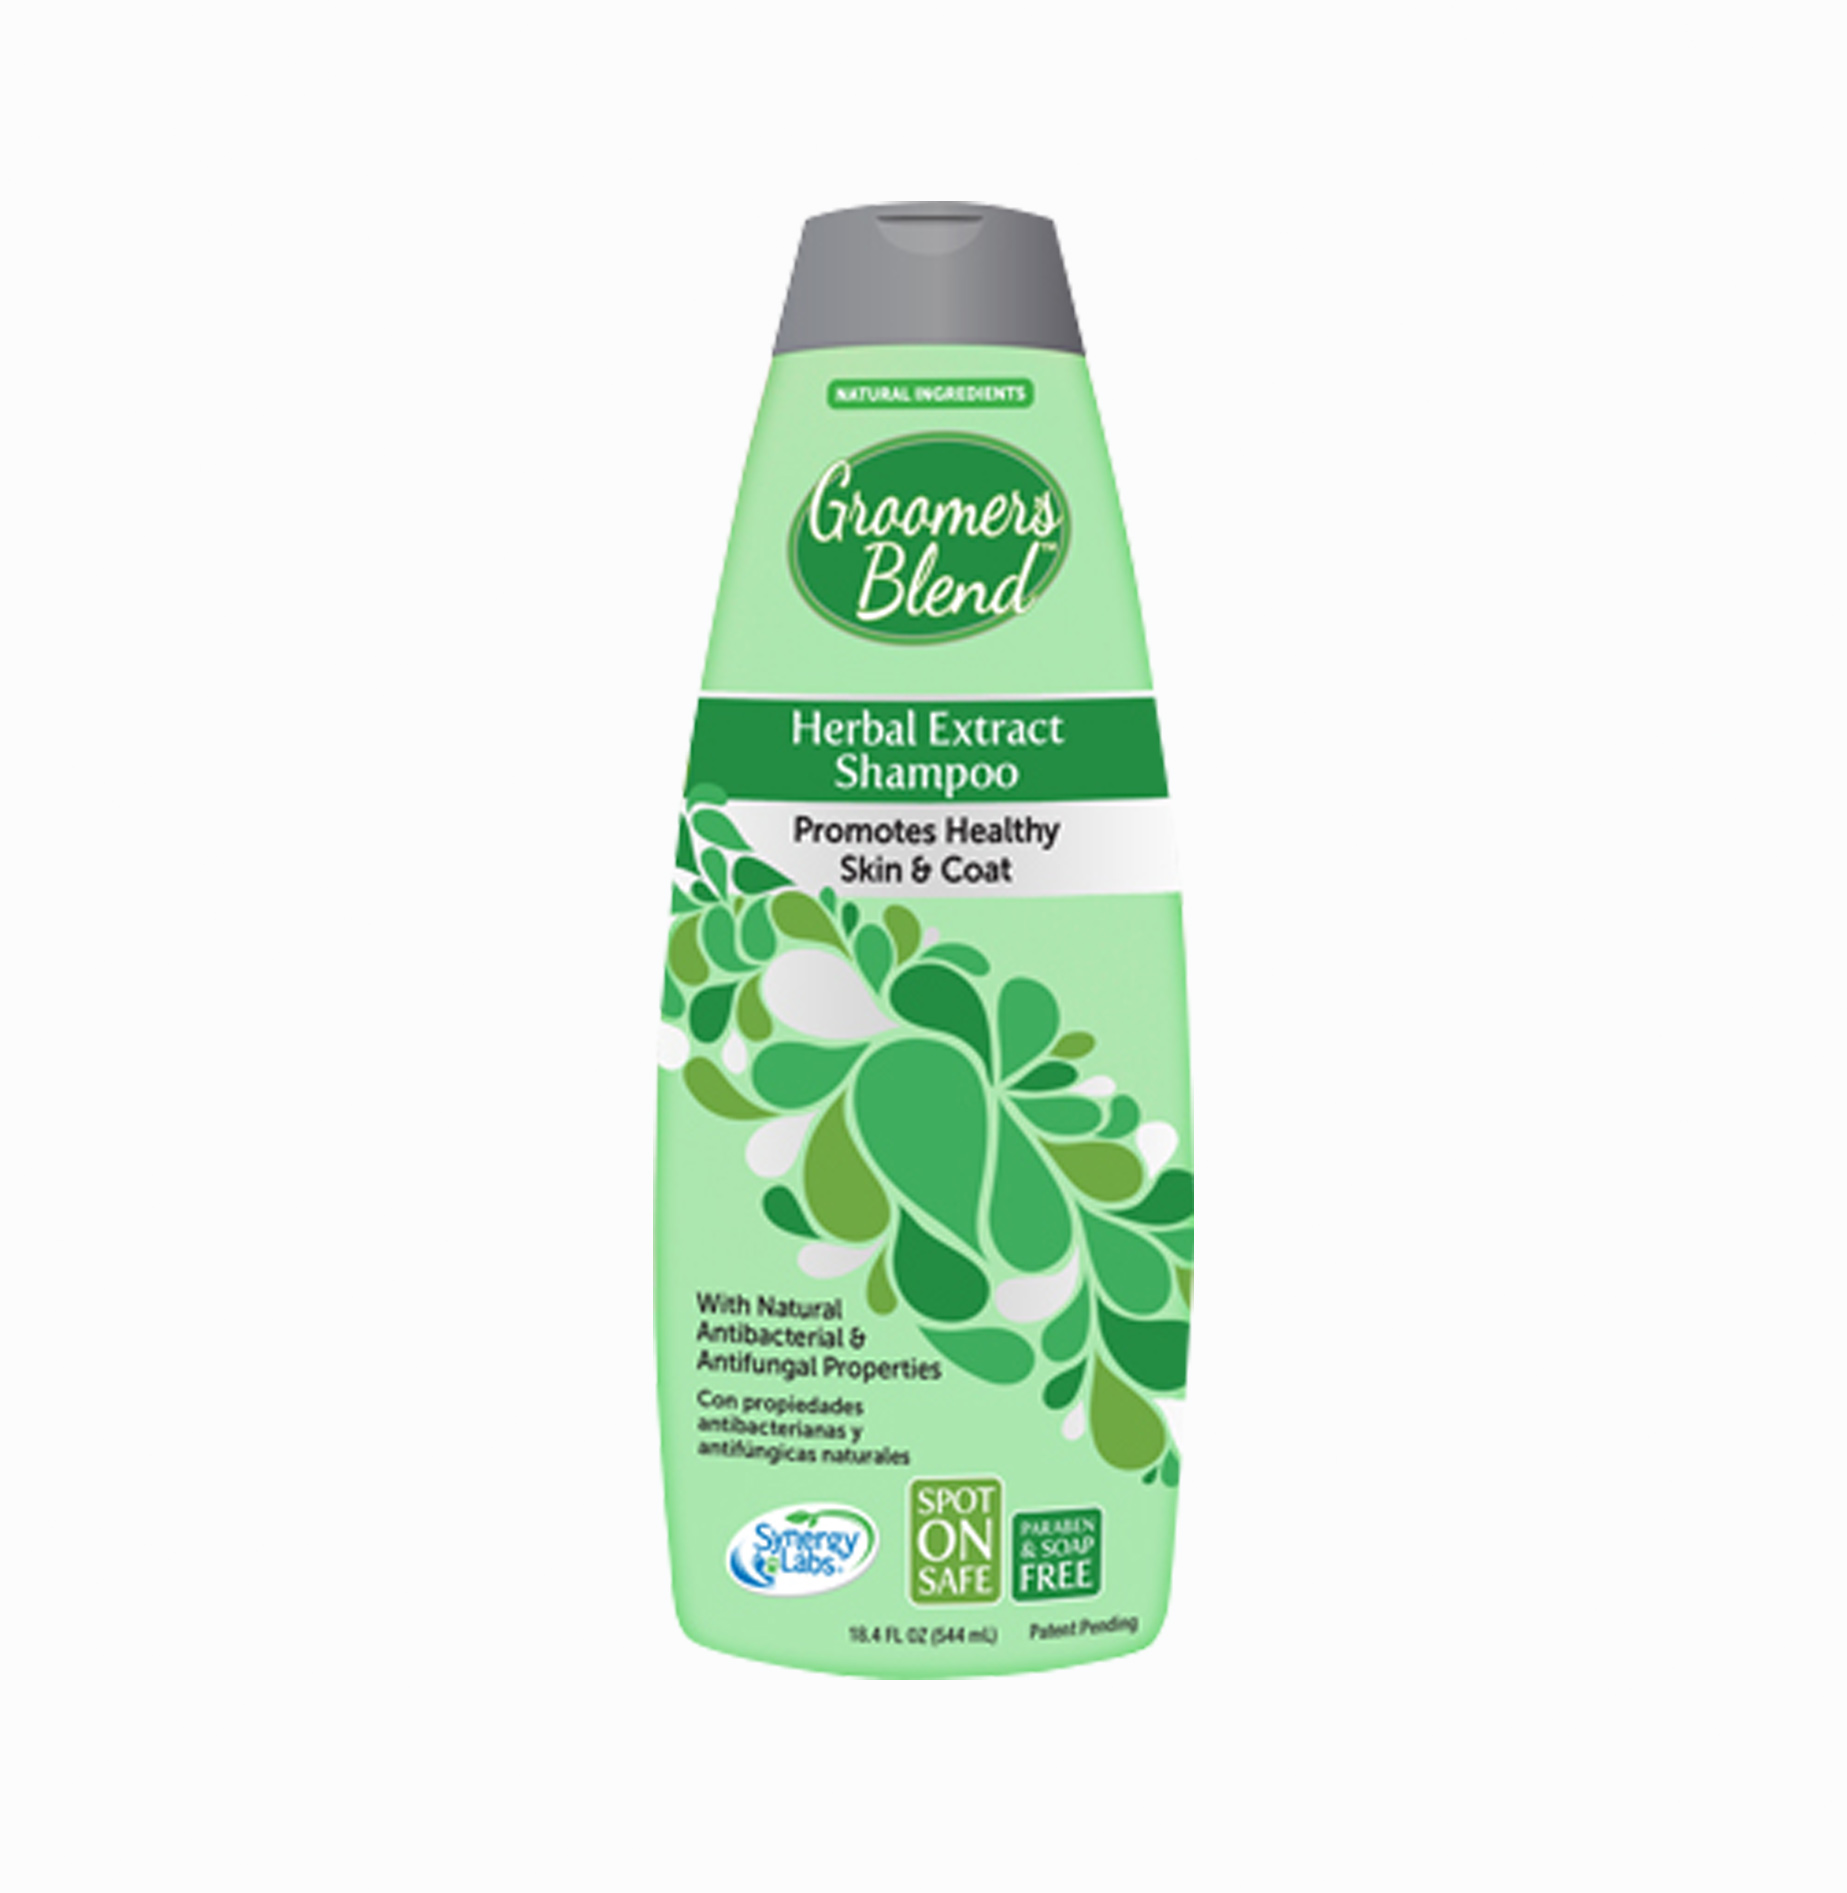 Groomer's Blend - Herbal Extract Shampoo